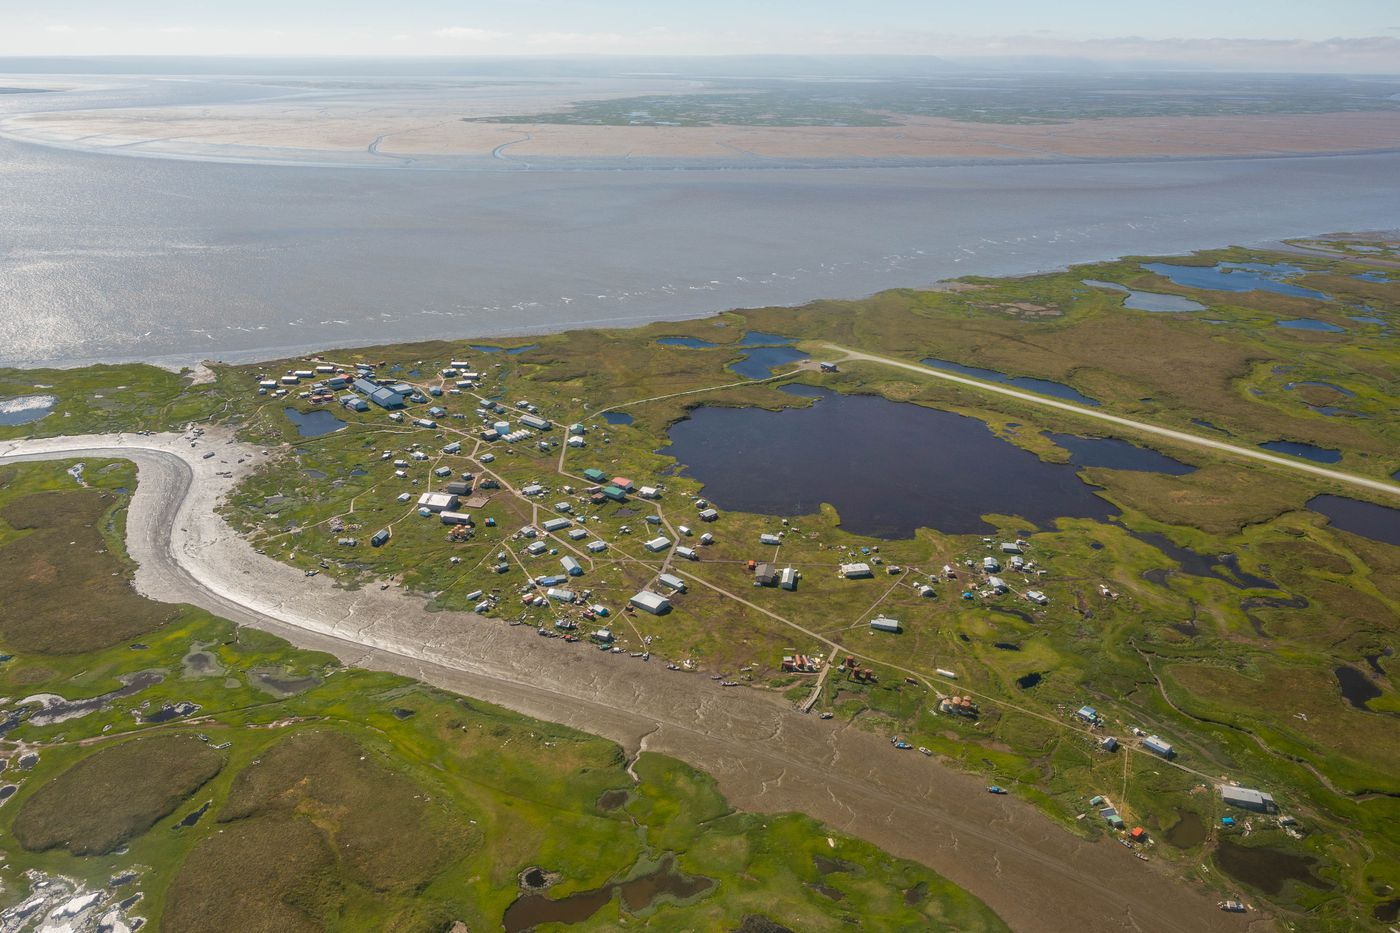 The village of Newtok, in southwest Alaska, on Tuesday, August 4, 2015. The community has lost 3 miles of shoreline to the Ninglick River over the past 60 years, and is in the process of moving to a new site on higher ground 9 miles away. (Loren Holmes / Alaska Dispatch New